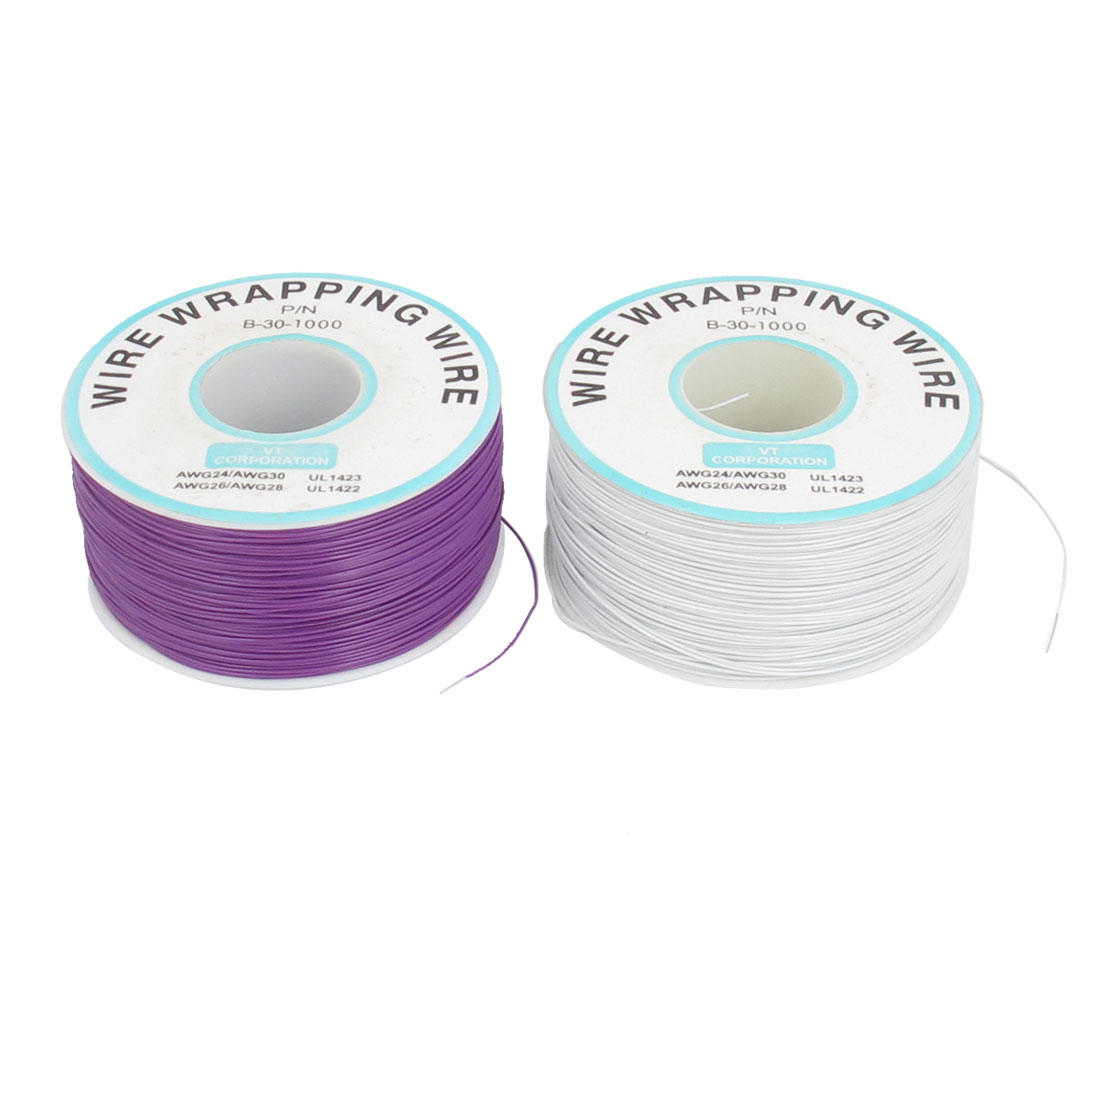 2 Pcs 305M P/N B-30-1000 30AWG PCB Solder White Purple Flexible 0.25mm Dia Copper Tin Plated Wire-Wrapping Wires